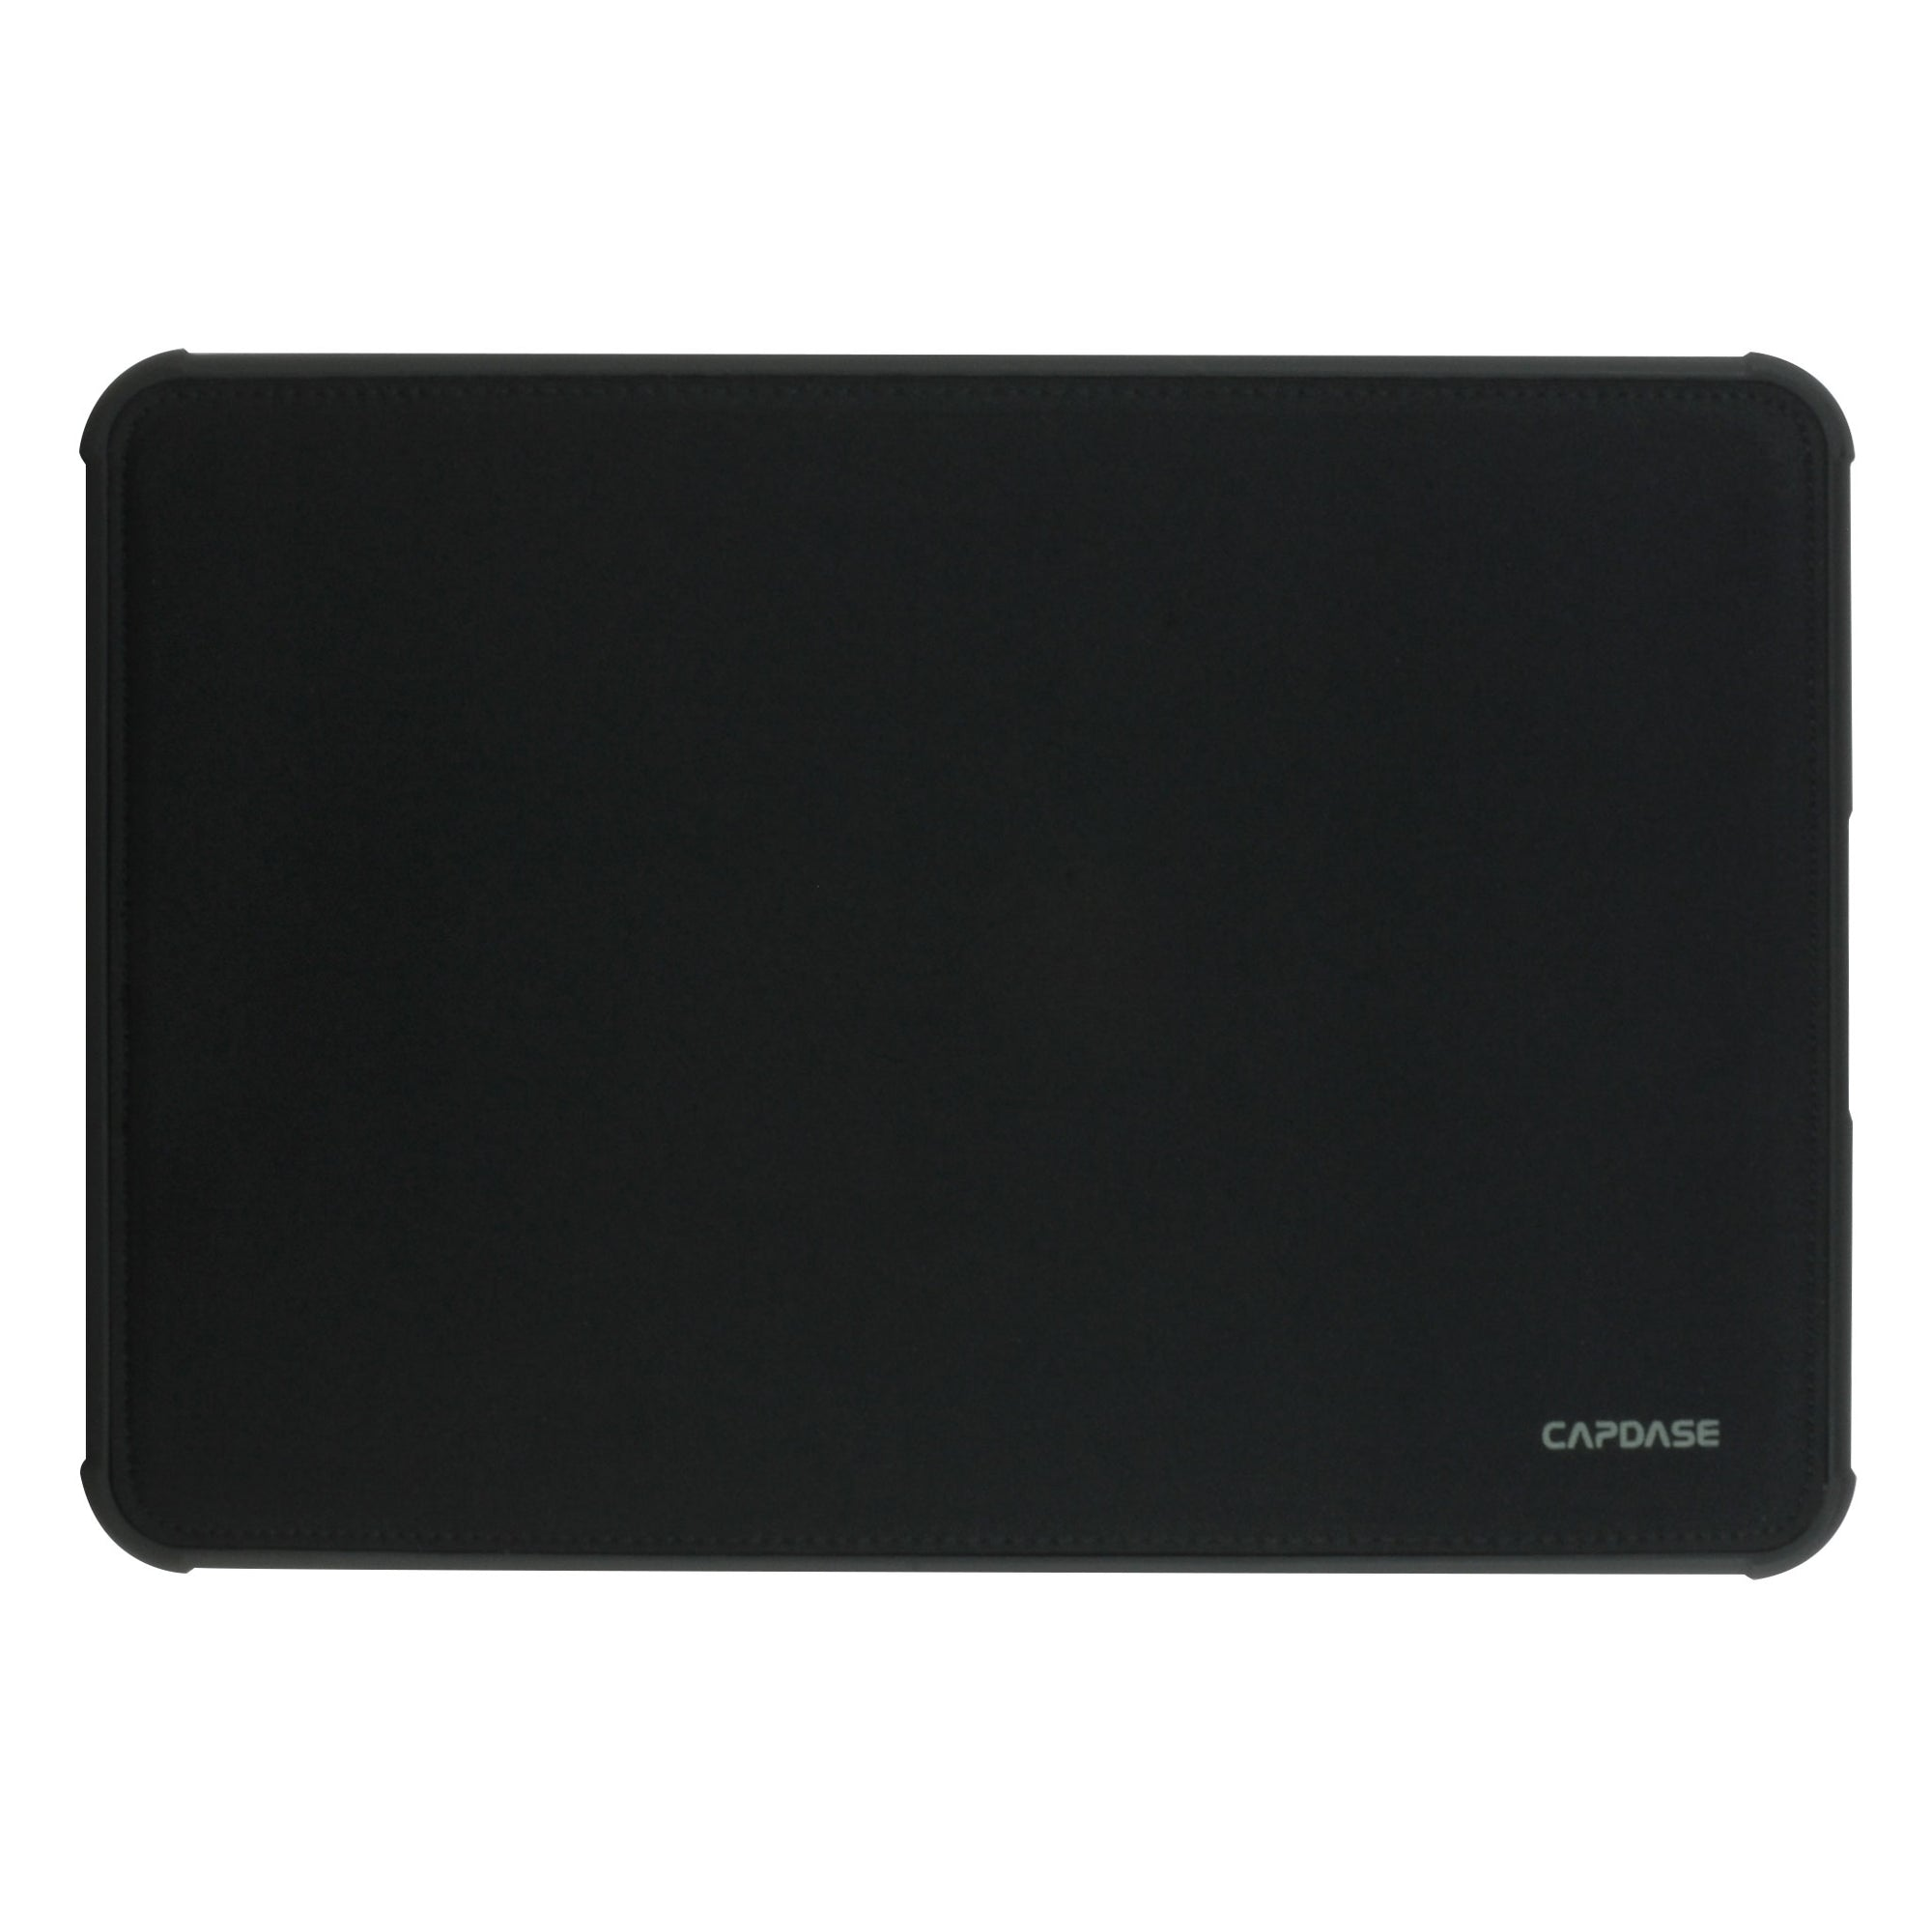 BUMPER SLIPIN-13 INCH ProKeeper for MacBook Pro 13-inch, Air 13-inch - Black